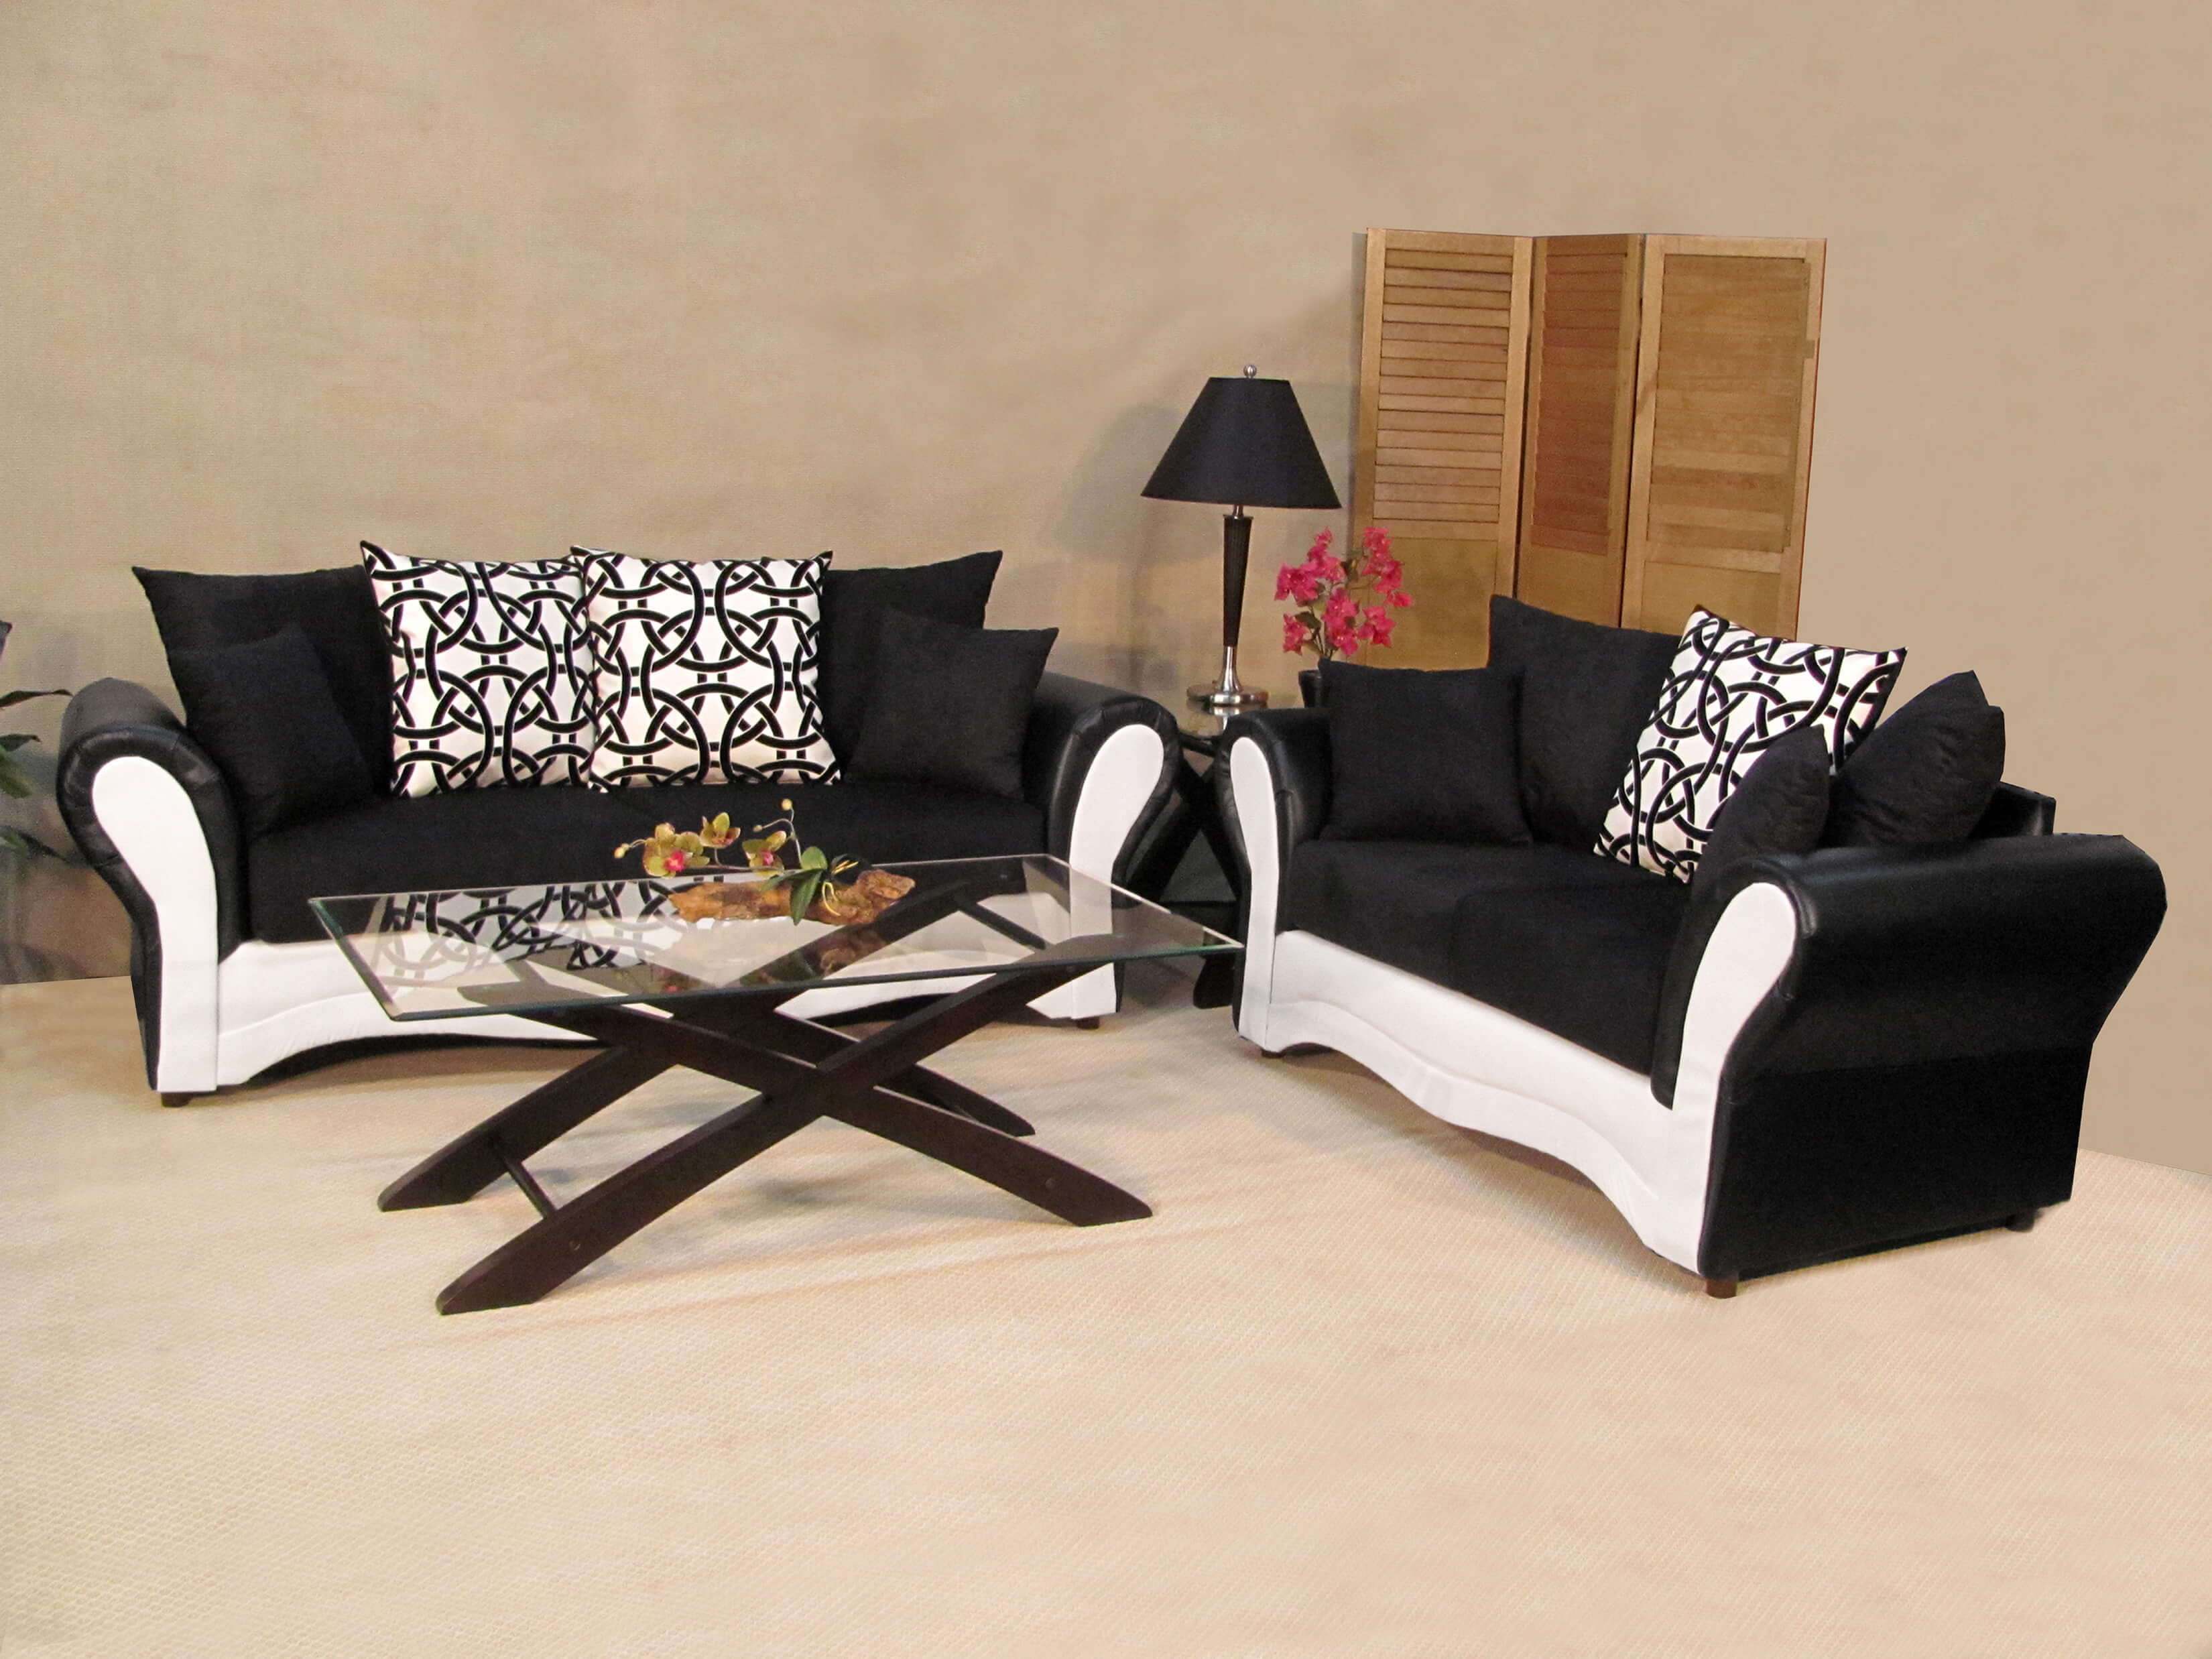 Black And White Ice Sofa Loveseat, Black And White Living Room Furniture